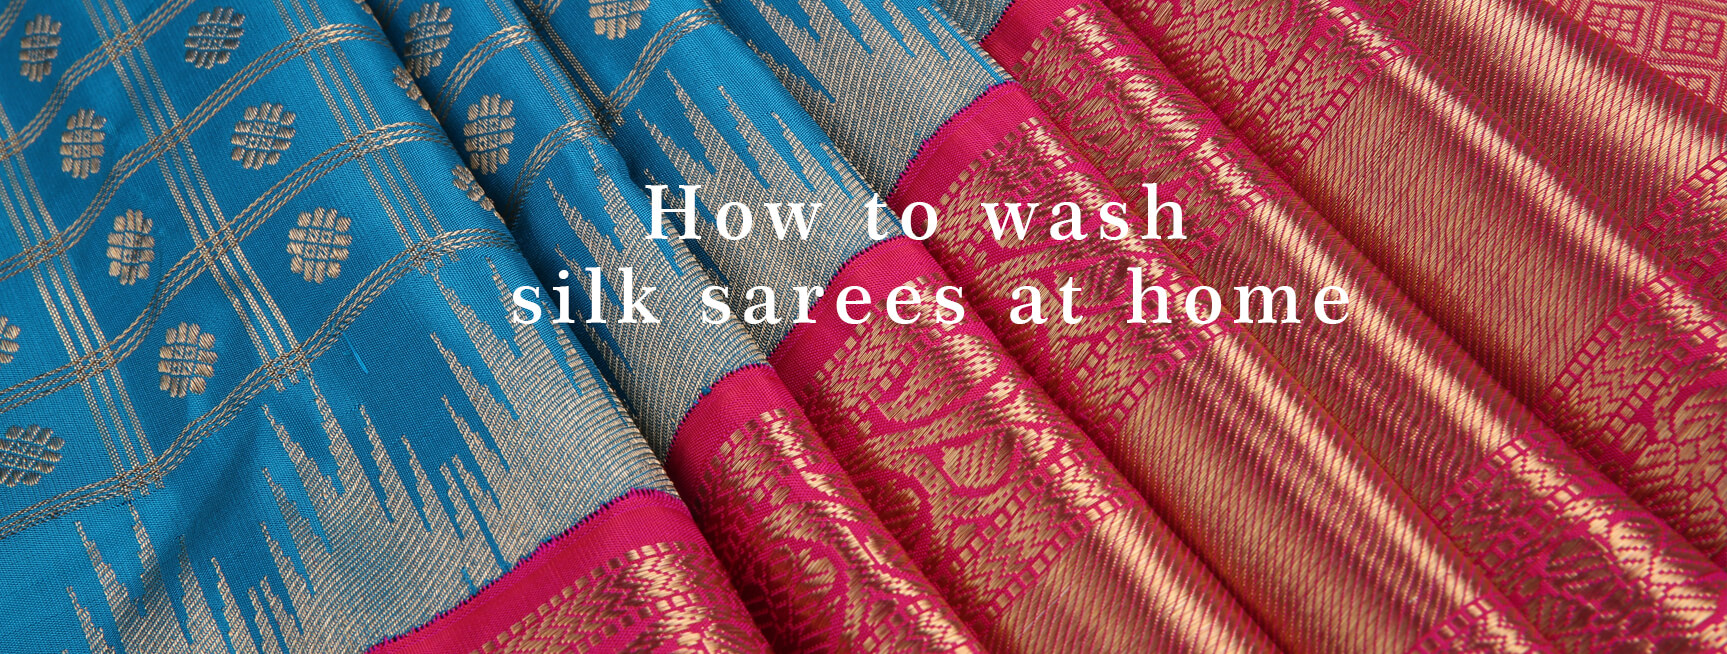 How to wash silk sarees at home?